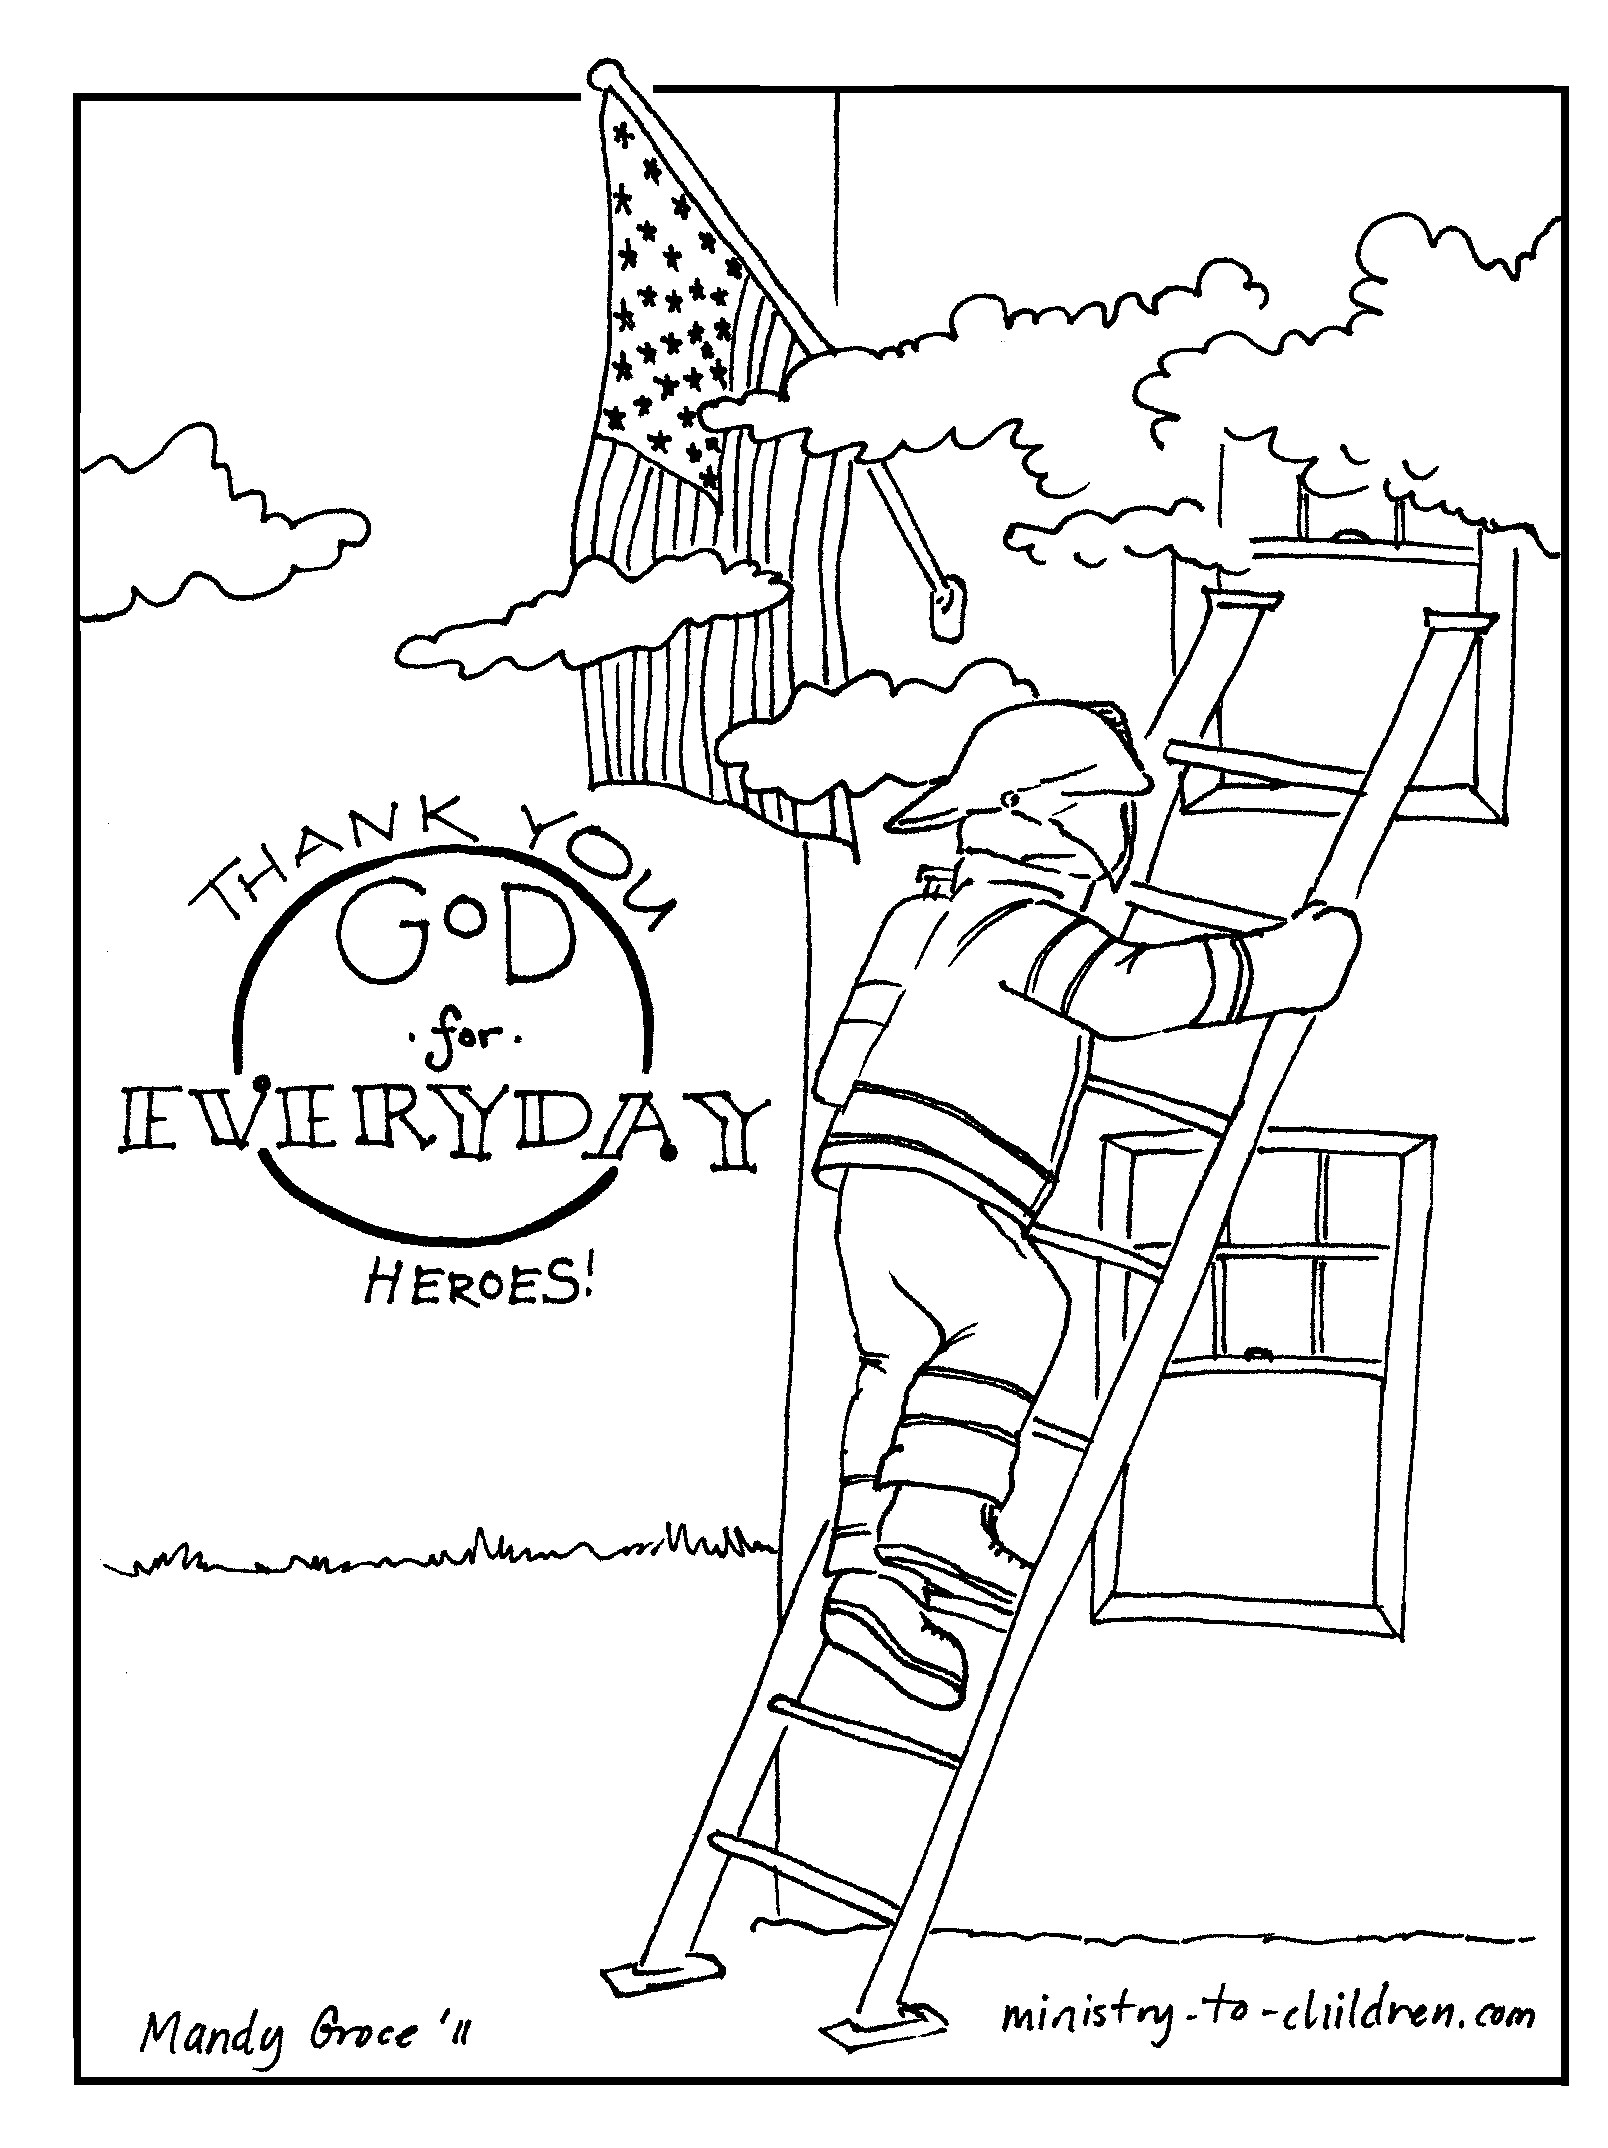 Firefighter Coloring Pages For Preschoolers At Getcolorings